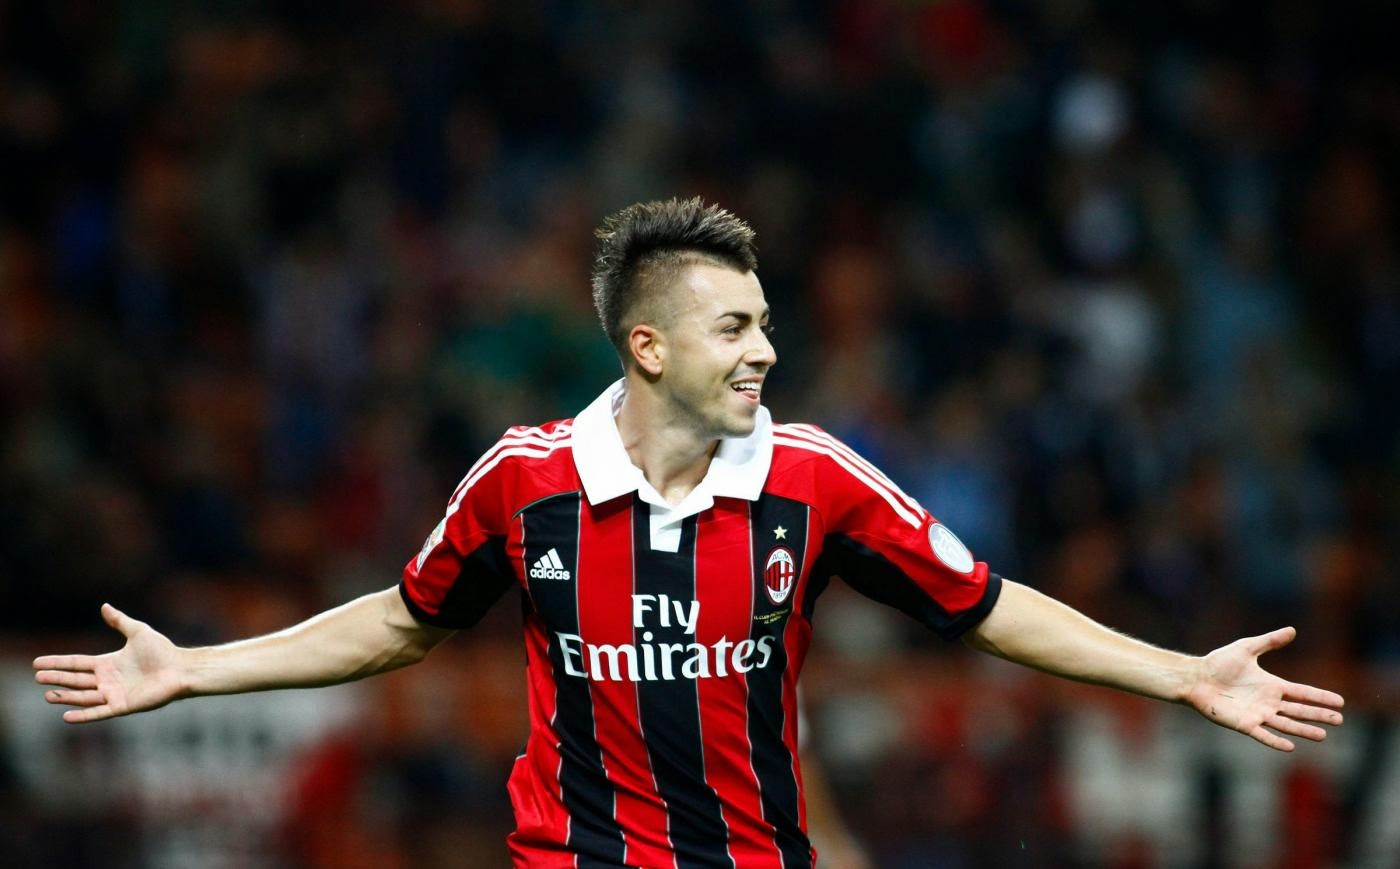 Stephan El Shaarawy Hairstyles Photos